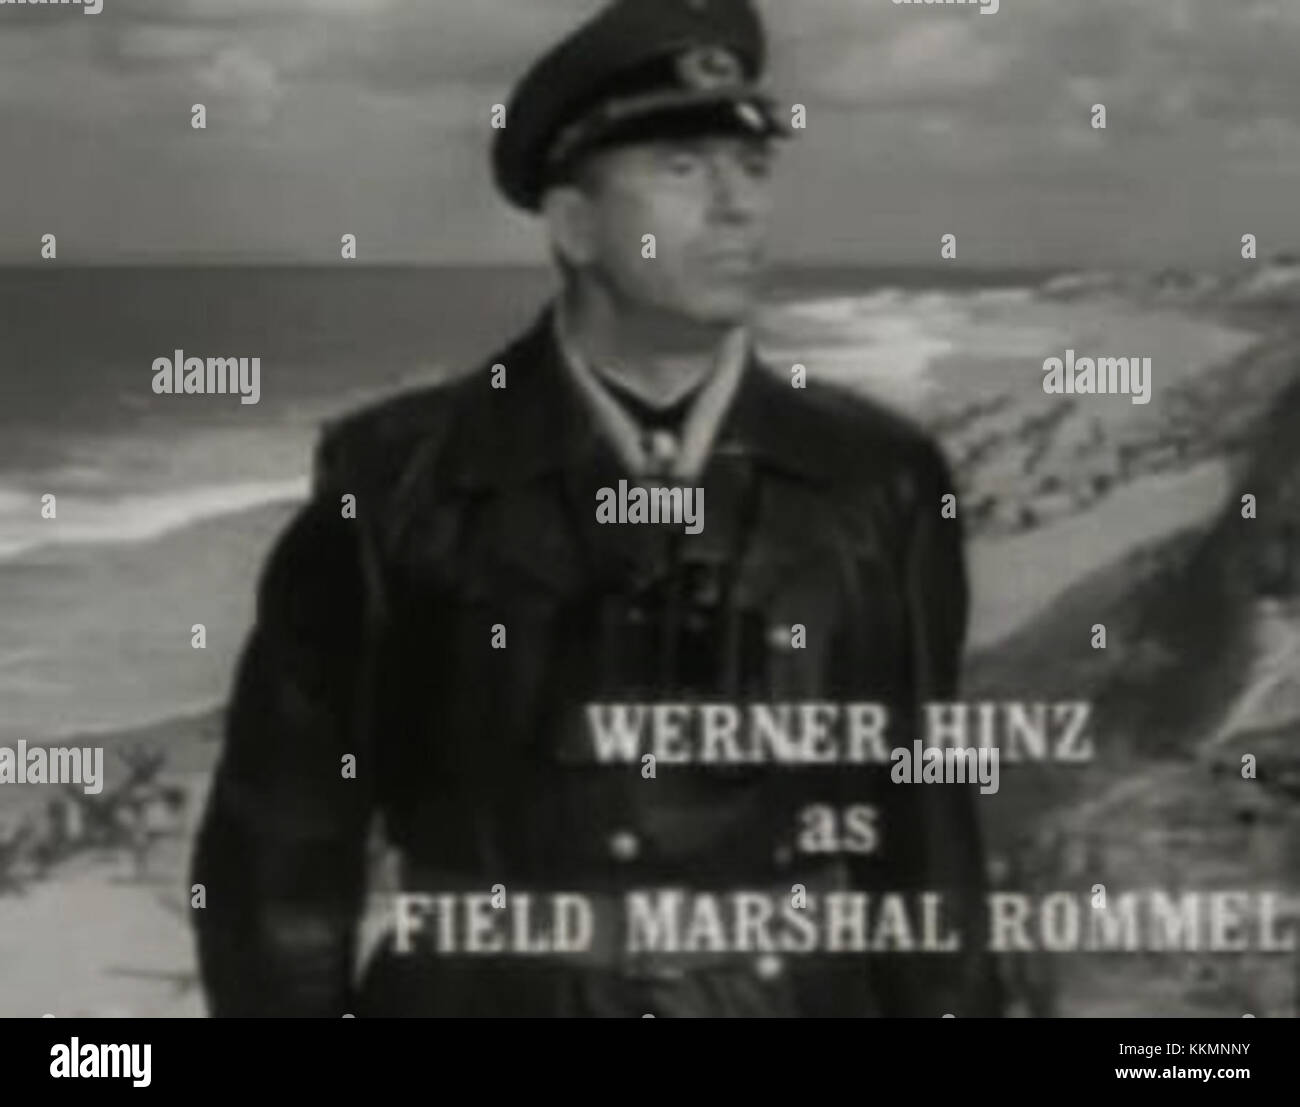 Werner Hinz in The Longest Day trailer - Stock Image